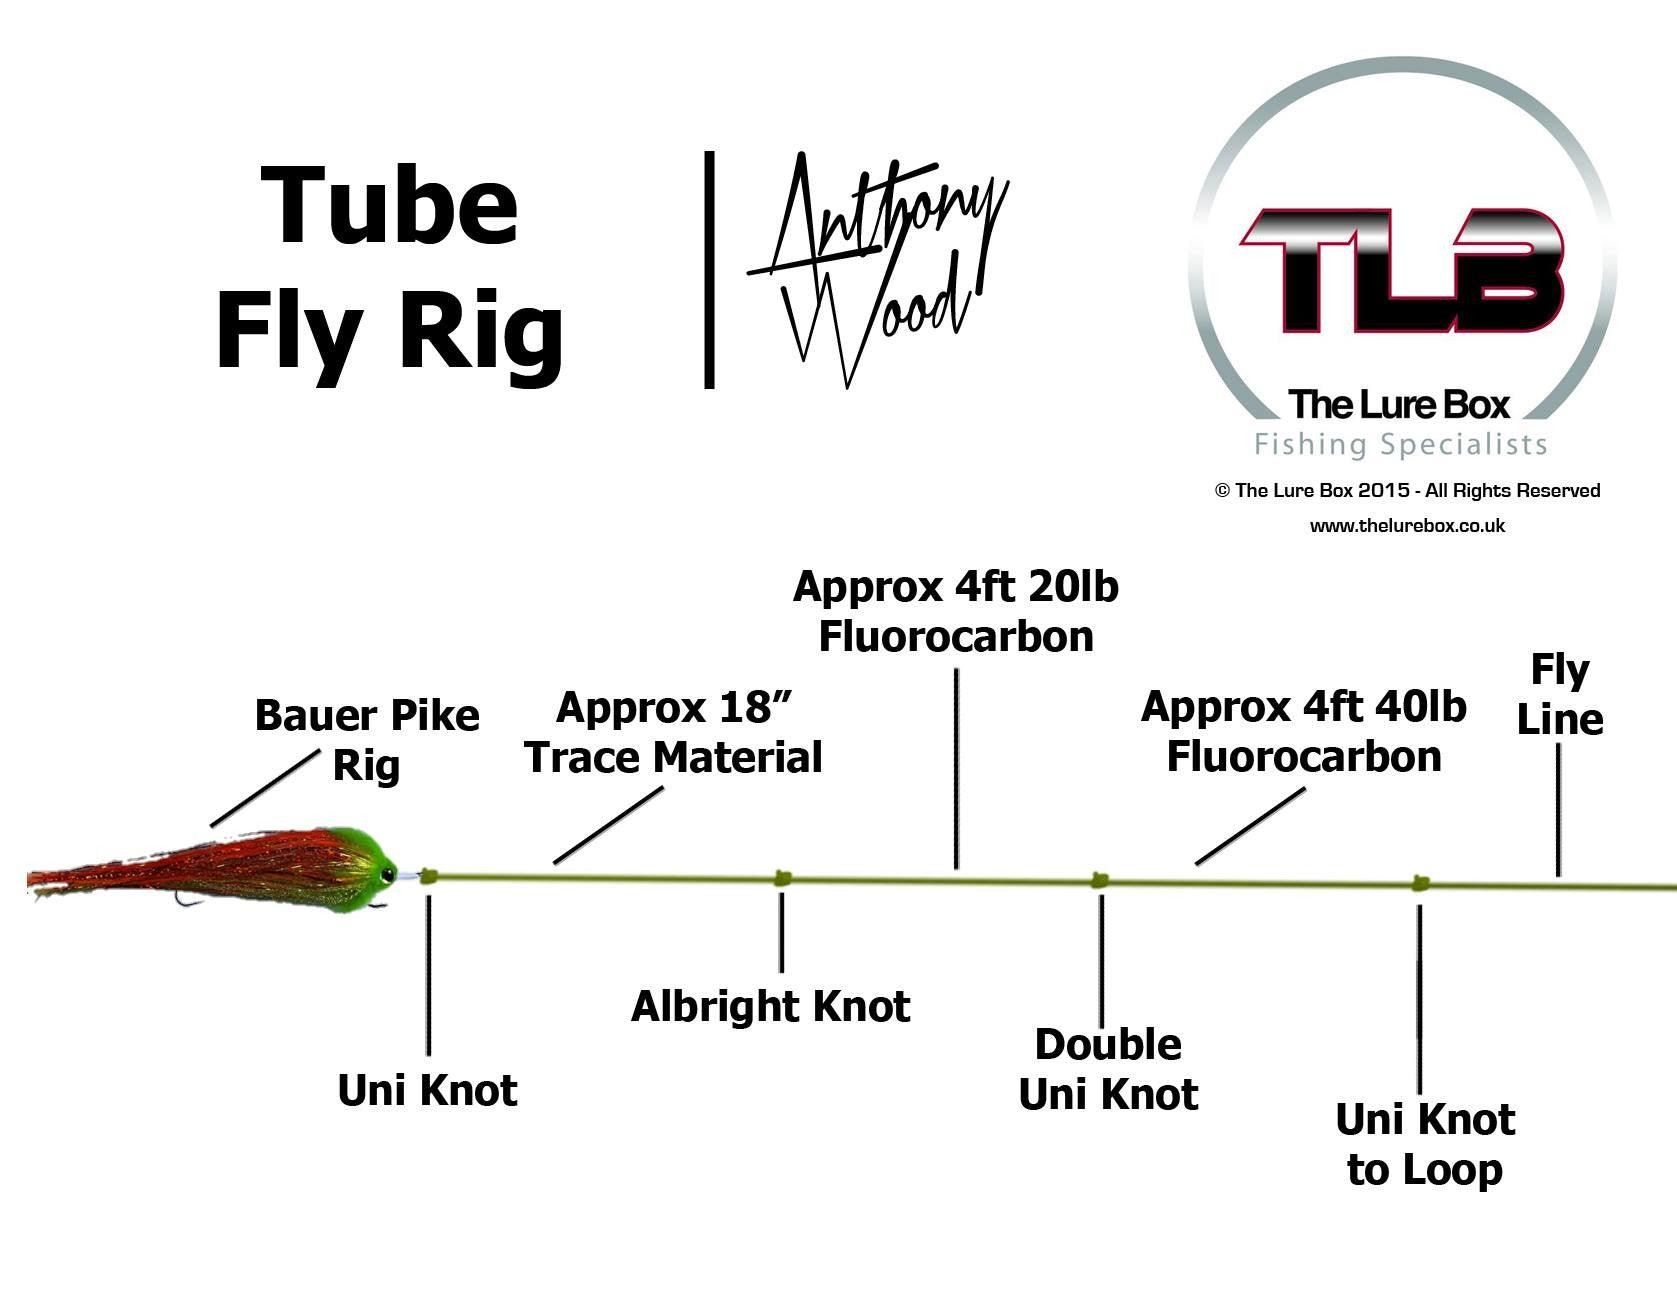 Tube Fly Rig Diagram - The Lure Box